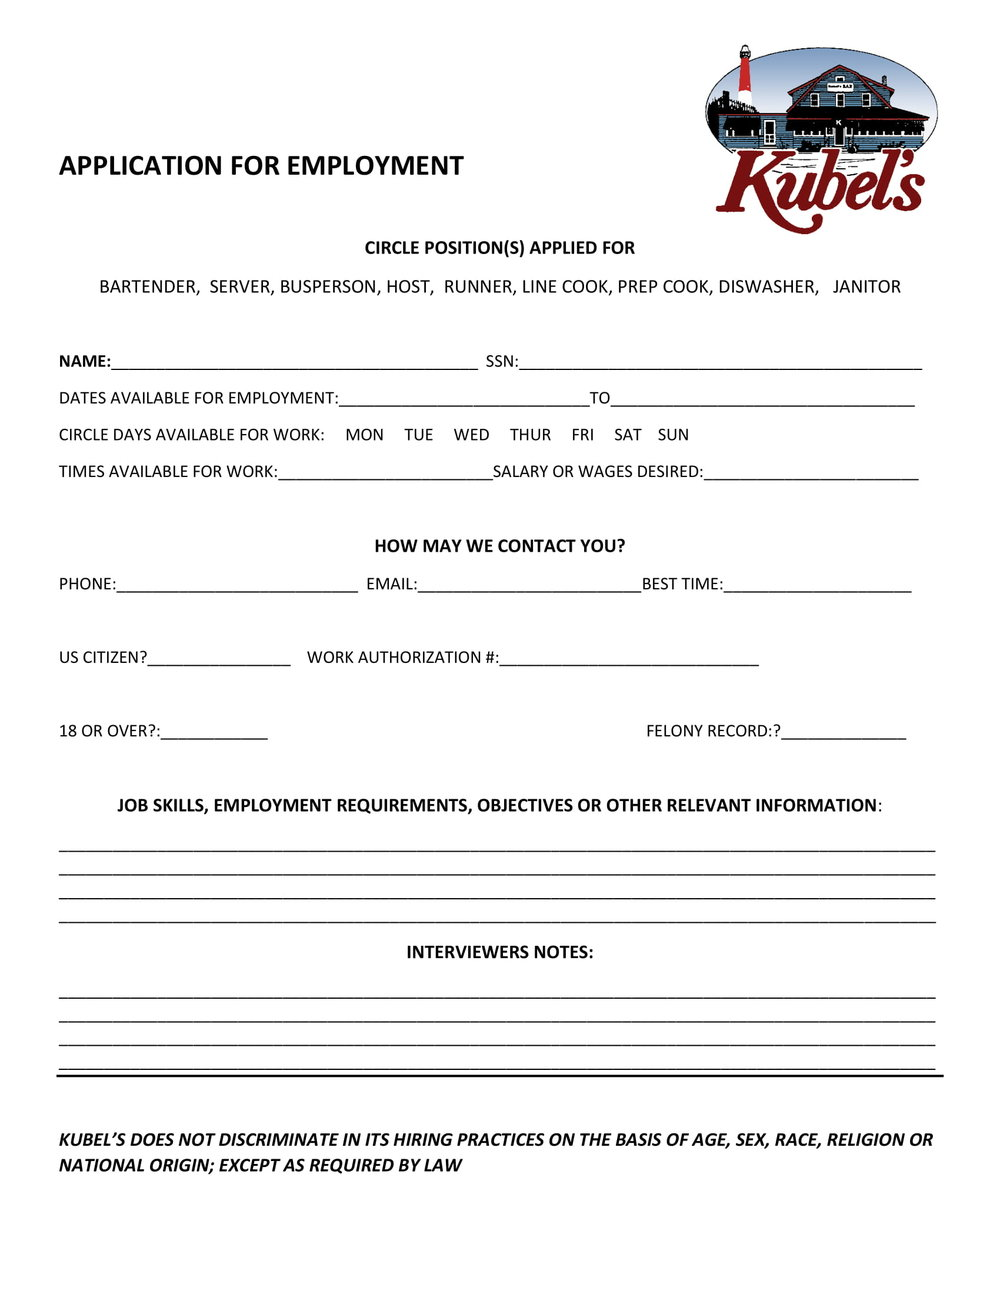 APPLICATION FOR EMPLOYMENT-1.jpg